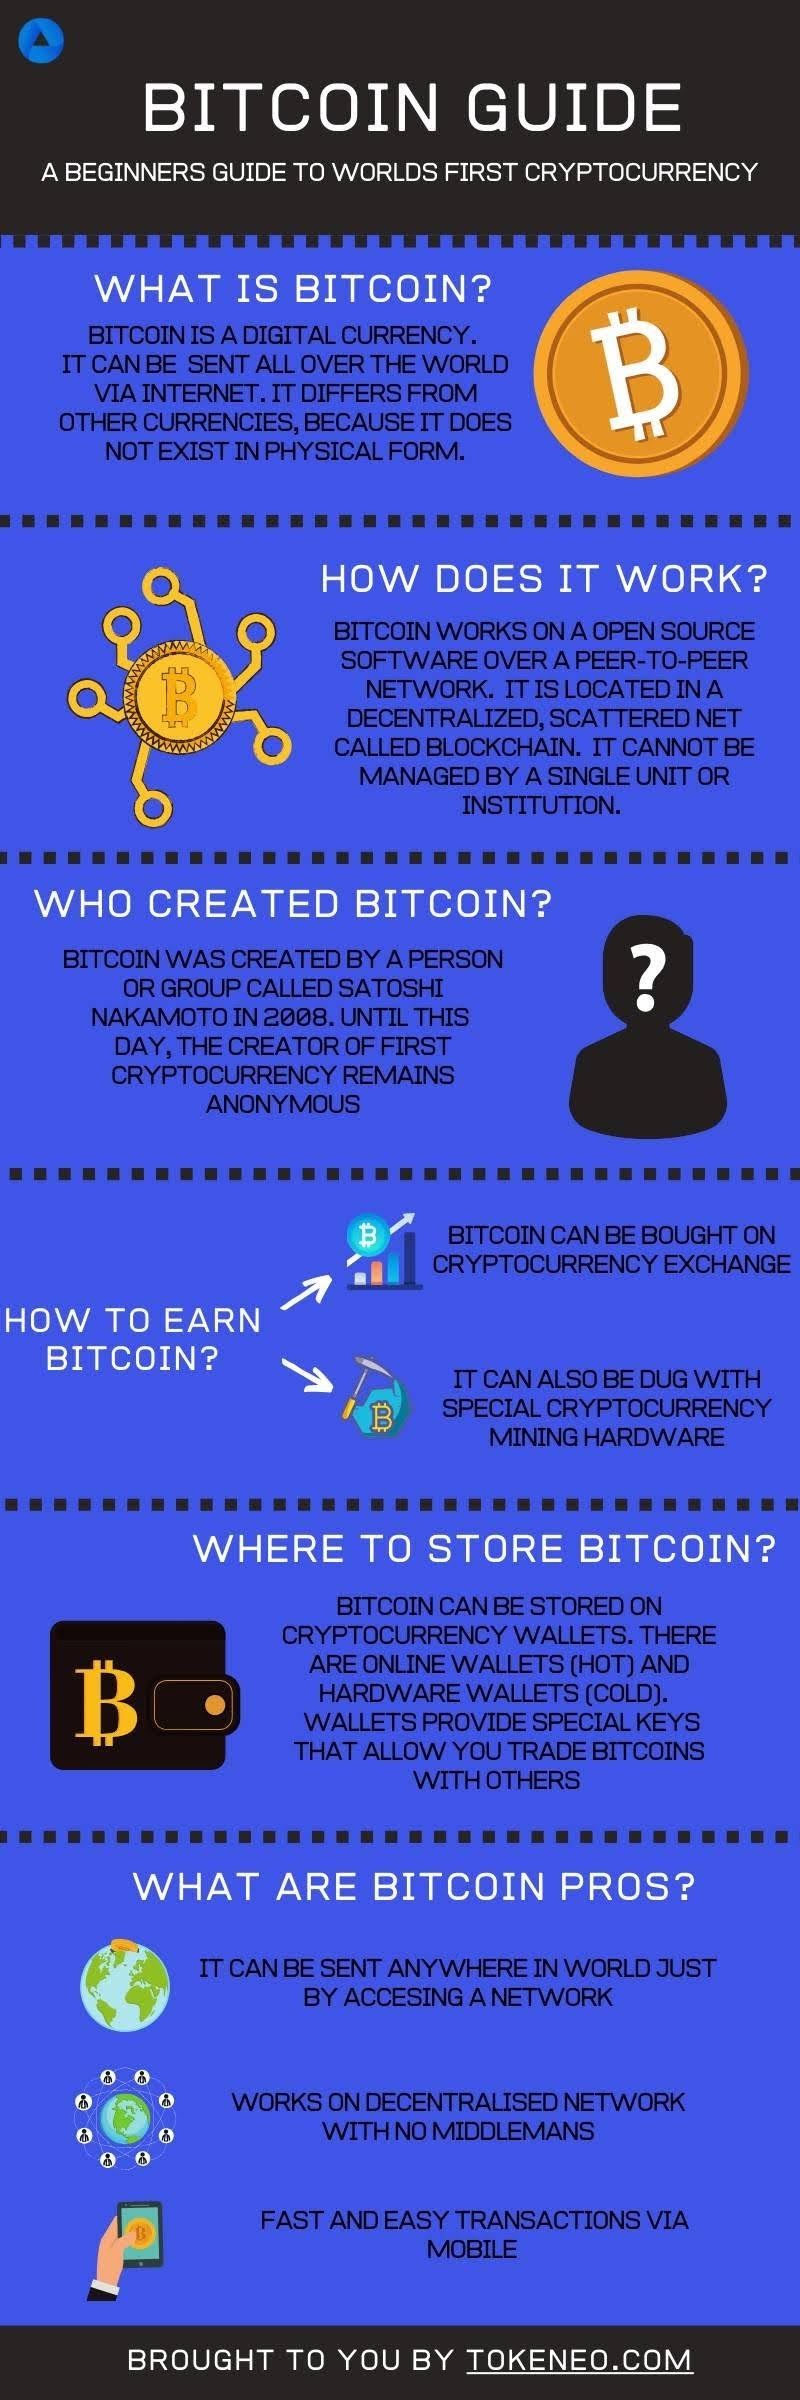 What's a Bitcoin? Basic Information #infographic